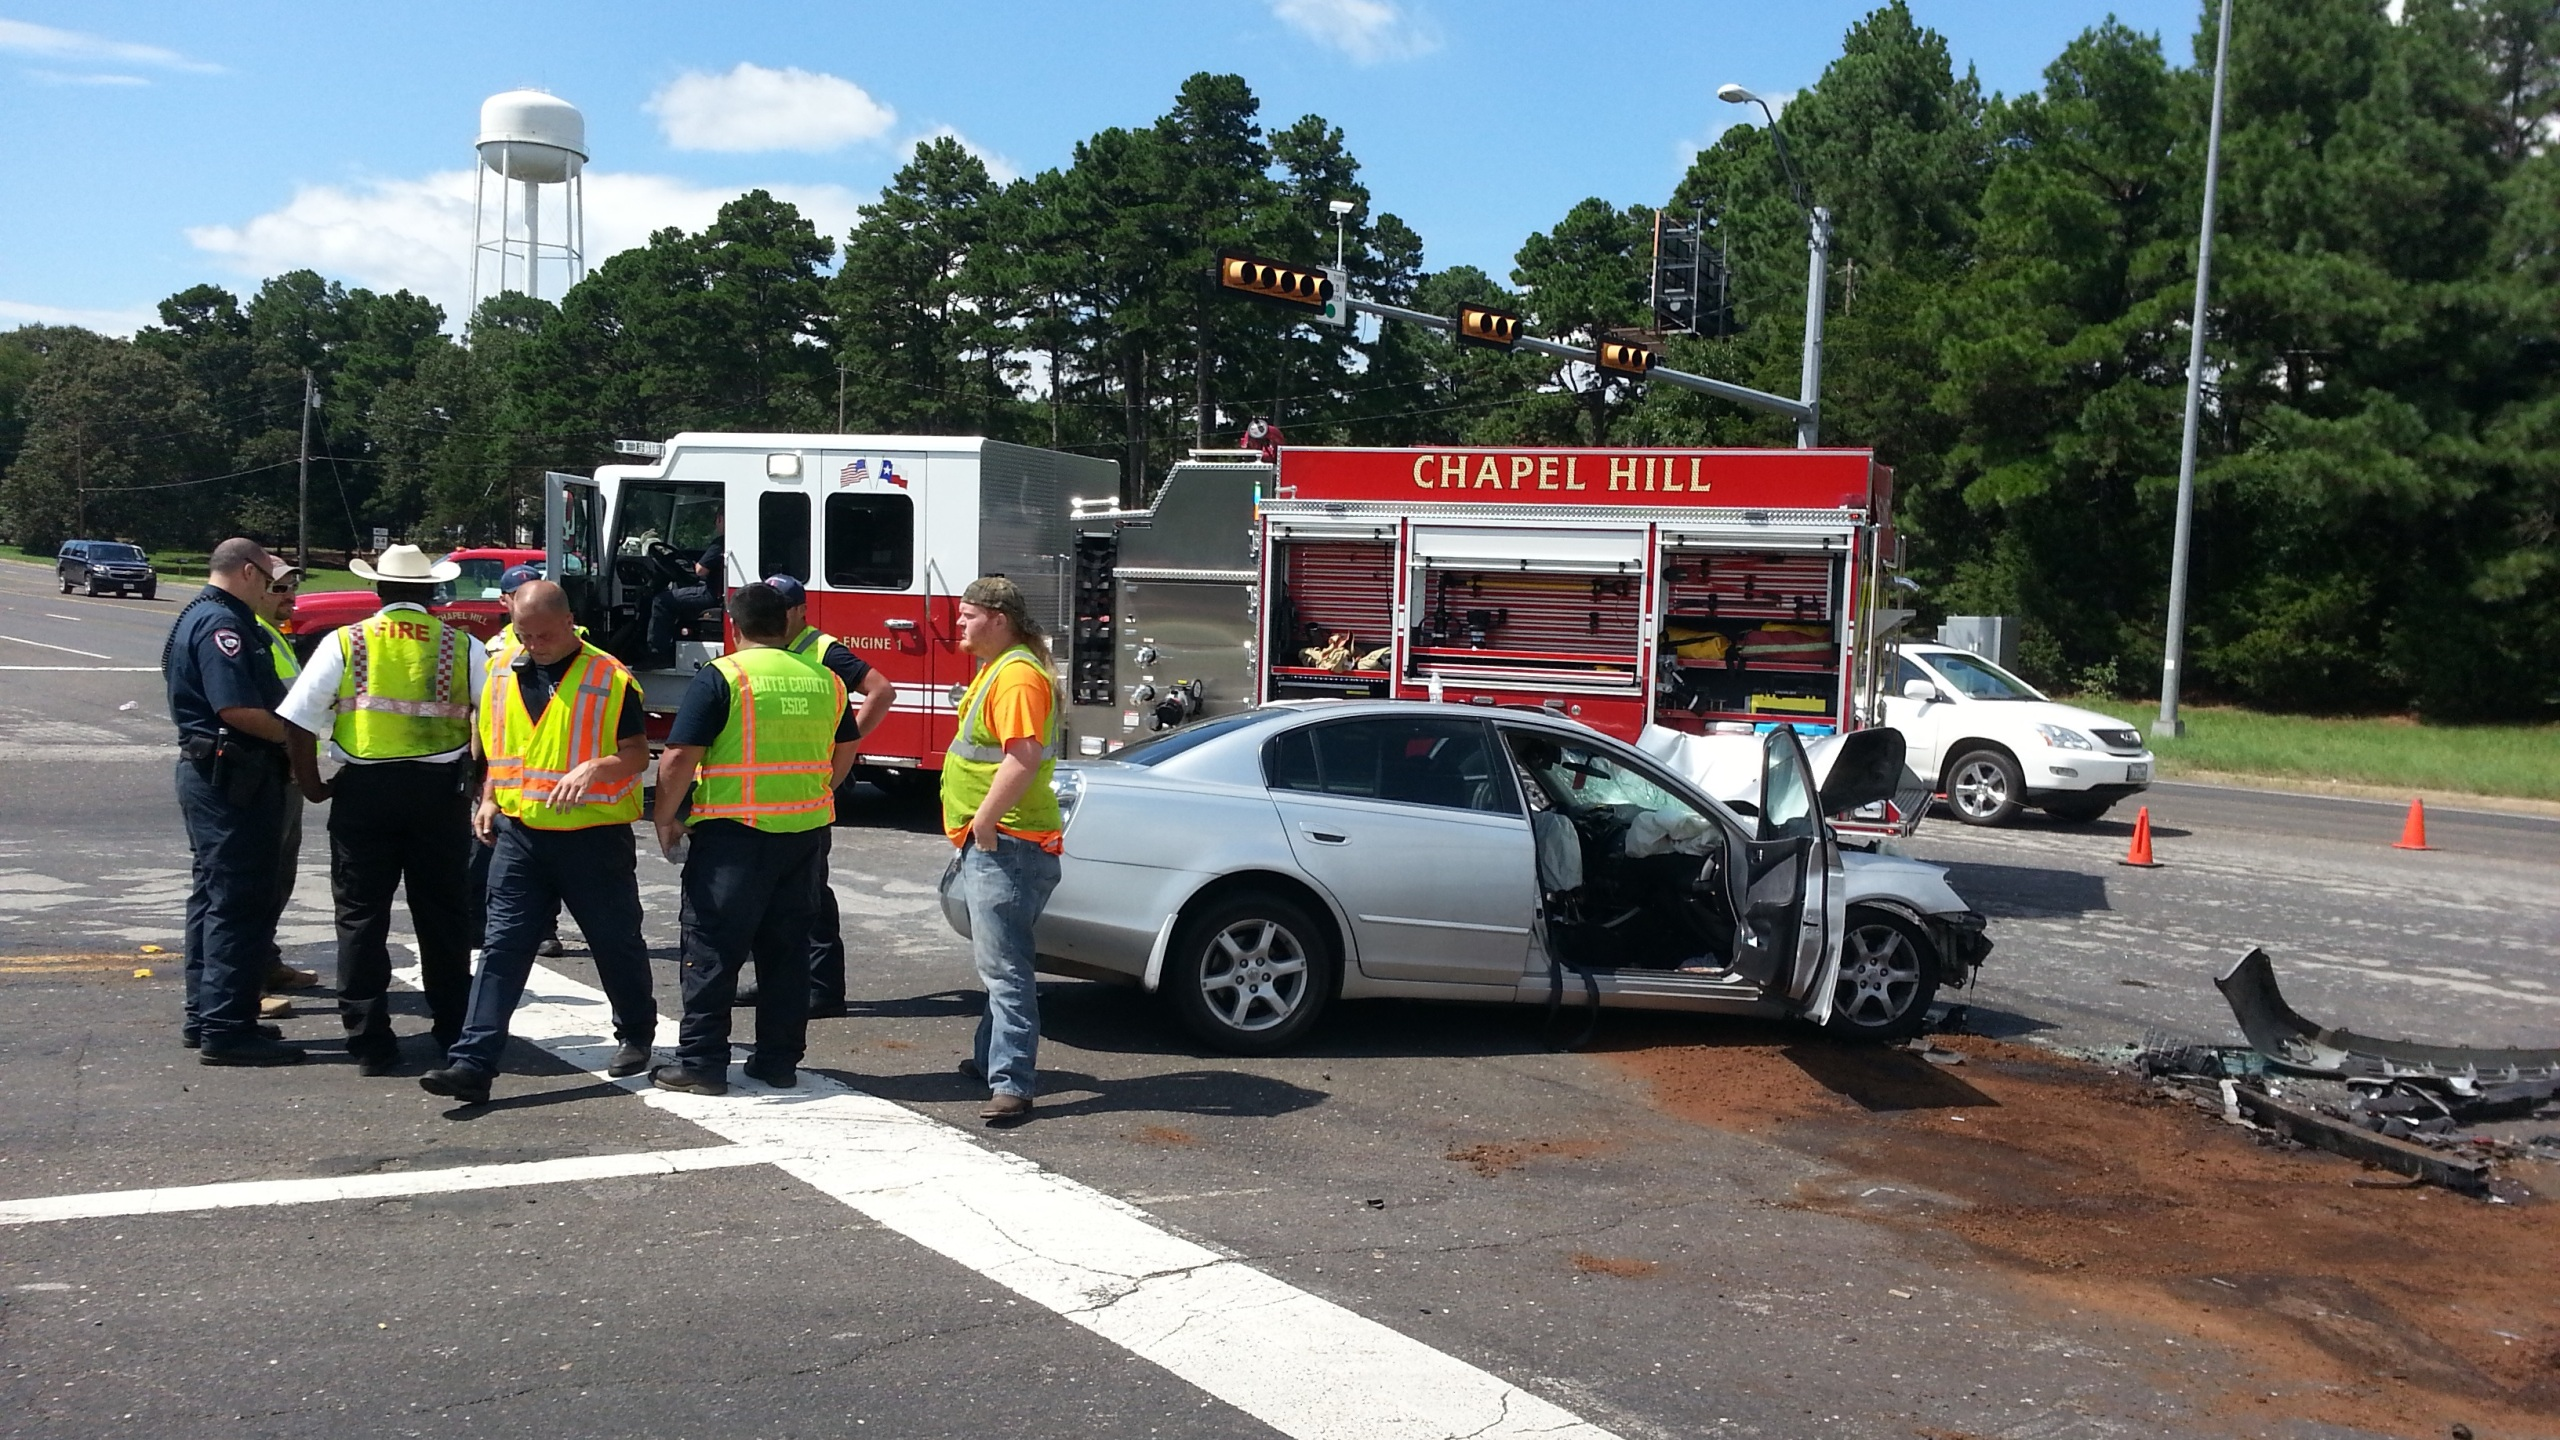 Officials responding to multi-vehicle wreck in Chapel Hill